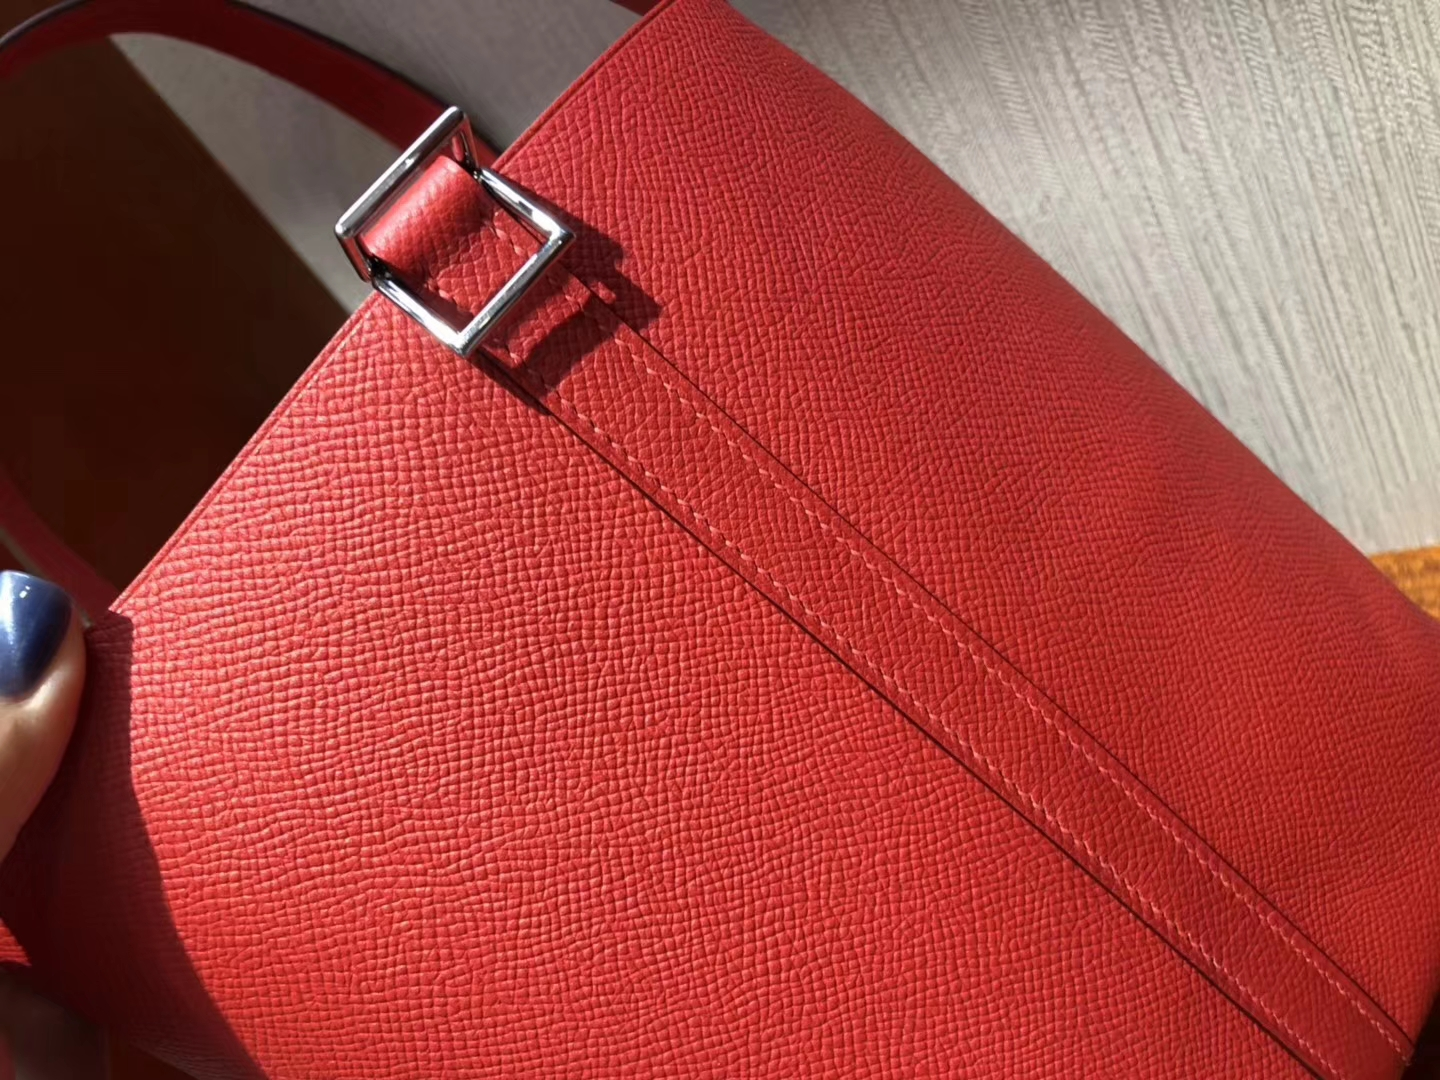 New Hermes Knitted Handle Picotin Bag22CM in S3 Rose De Coeur Epsom Calf